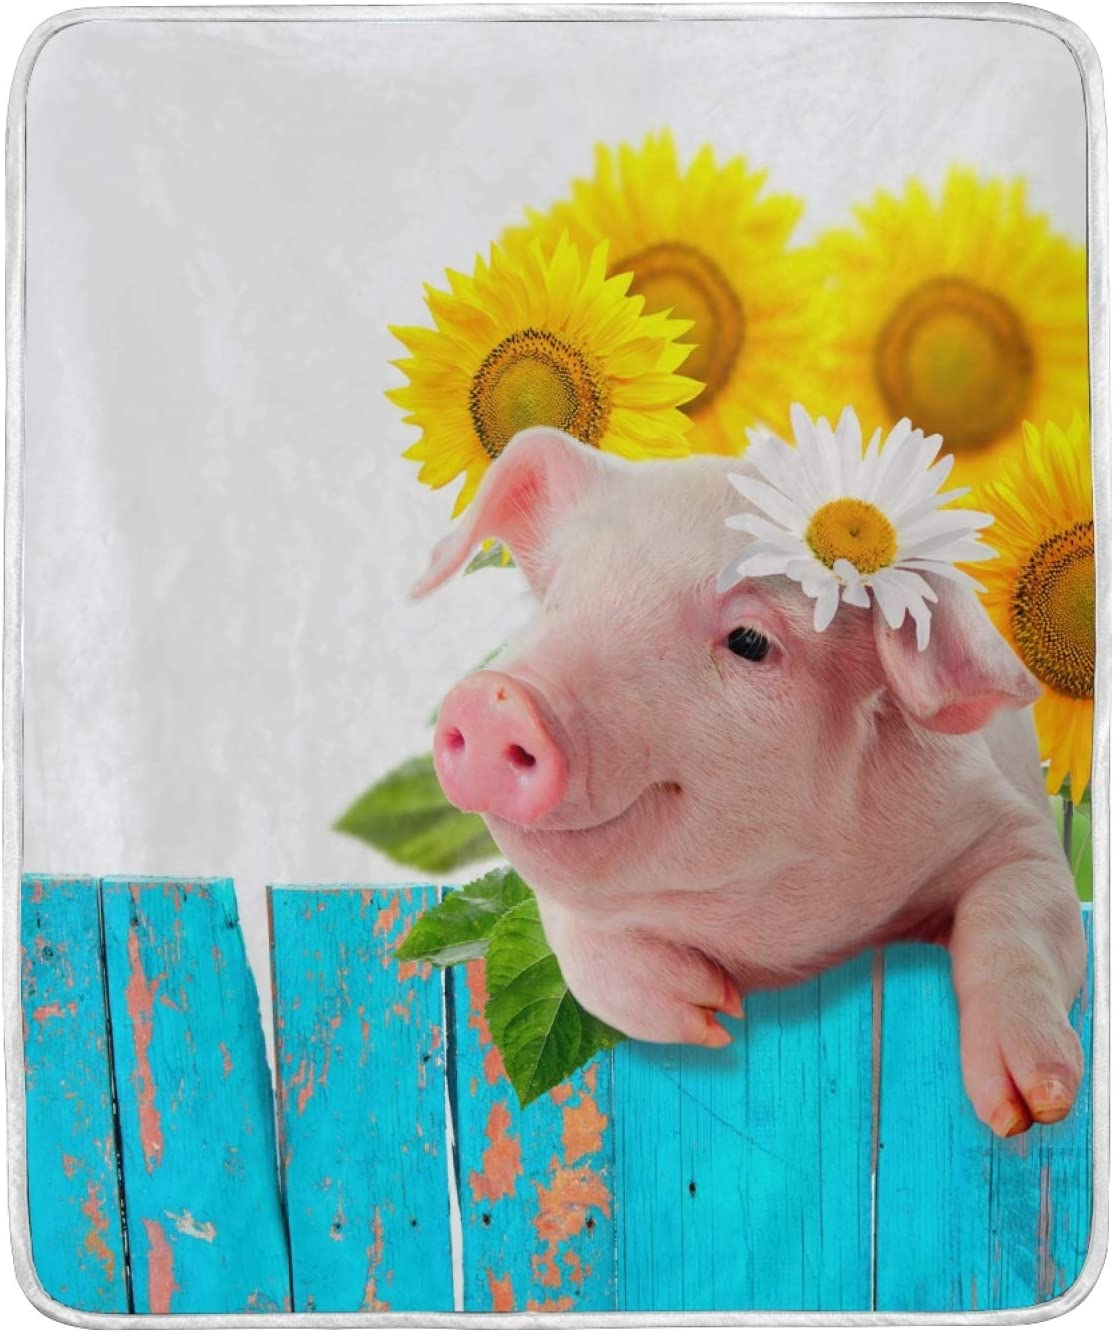 NOVTO Throw Animer Free Shipping New and price revision Blanket Funny Pig Warm Super Sunflower Soft Blankets